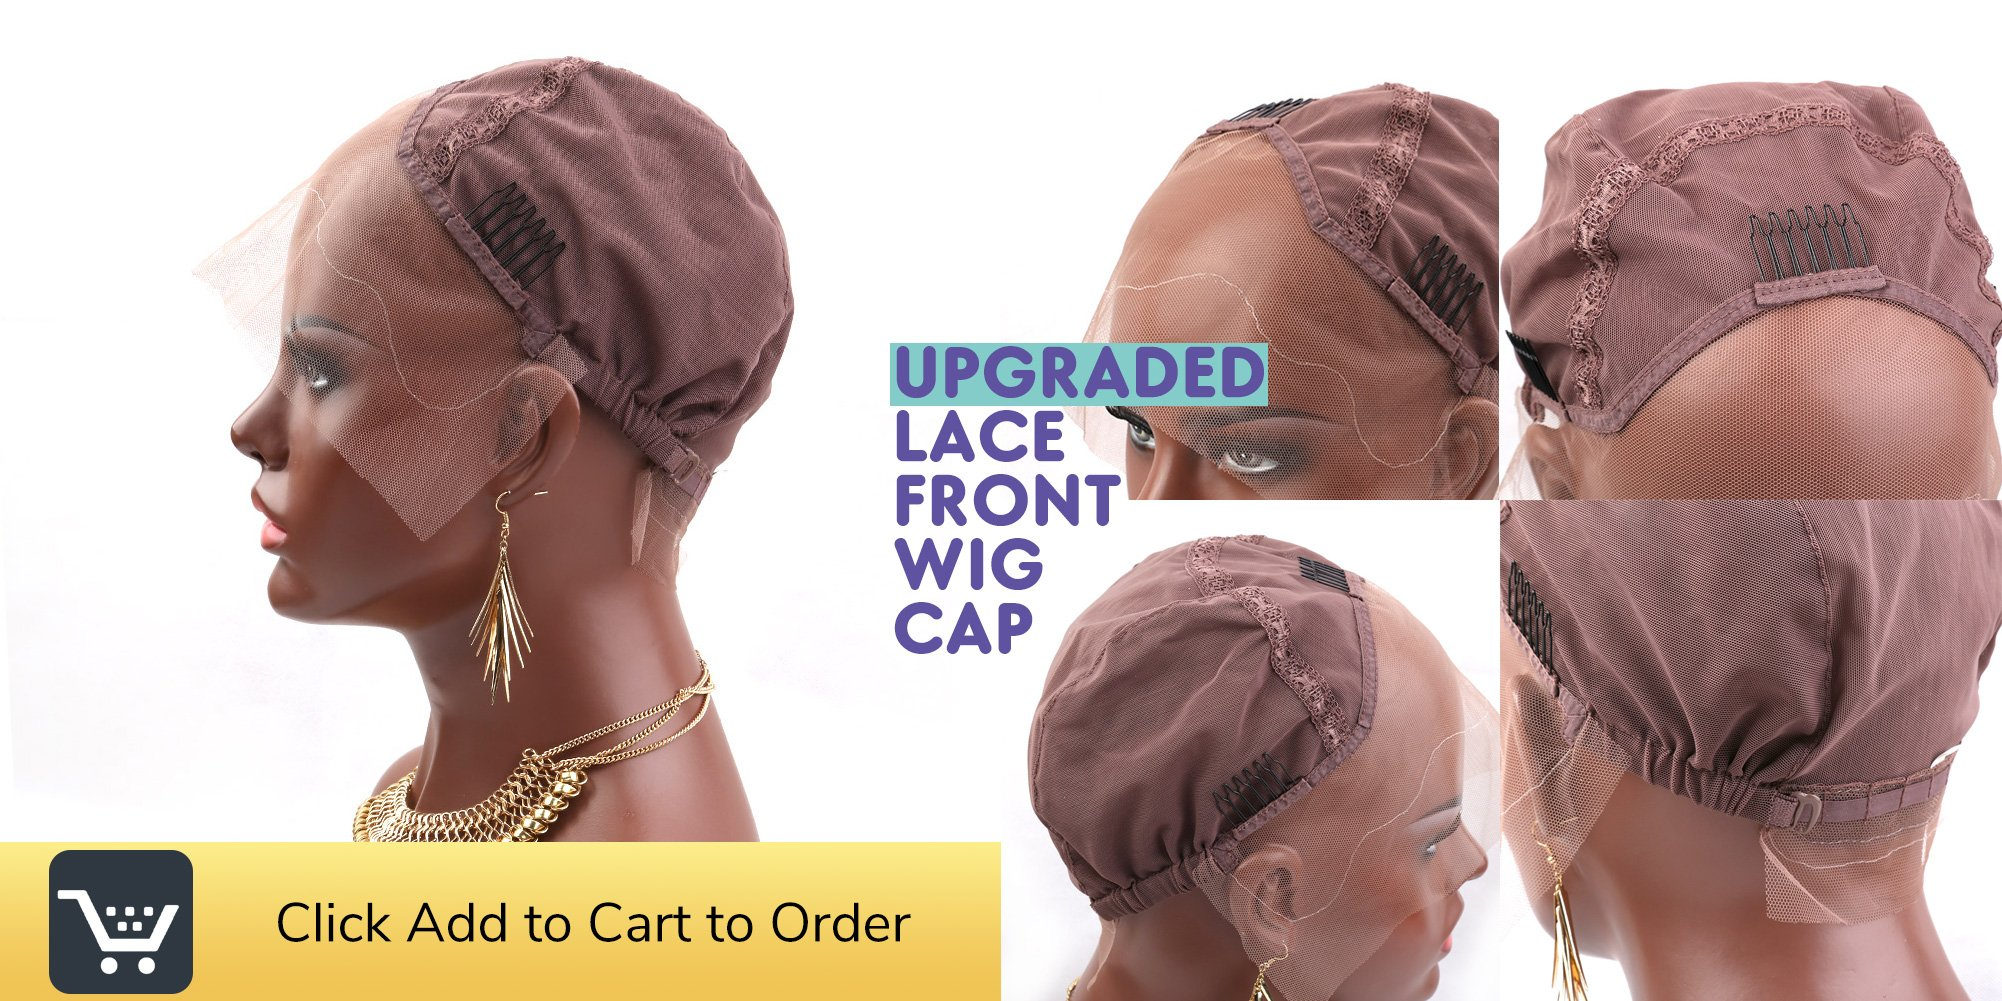 [Upgraded] Bella Hair Breathable Lace Front Wig Cap for DIY Making Wigs with Adjustable Straps and Combs, Light Brown Medium Size by Bella Hair (Image #7)